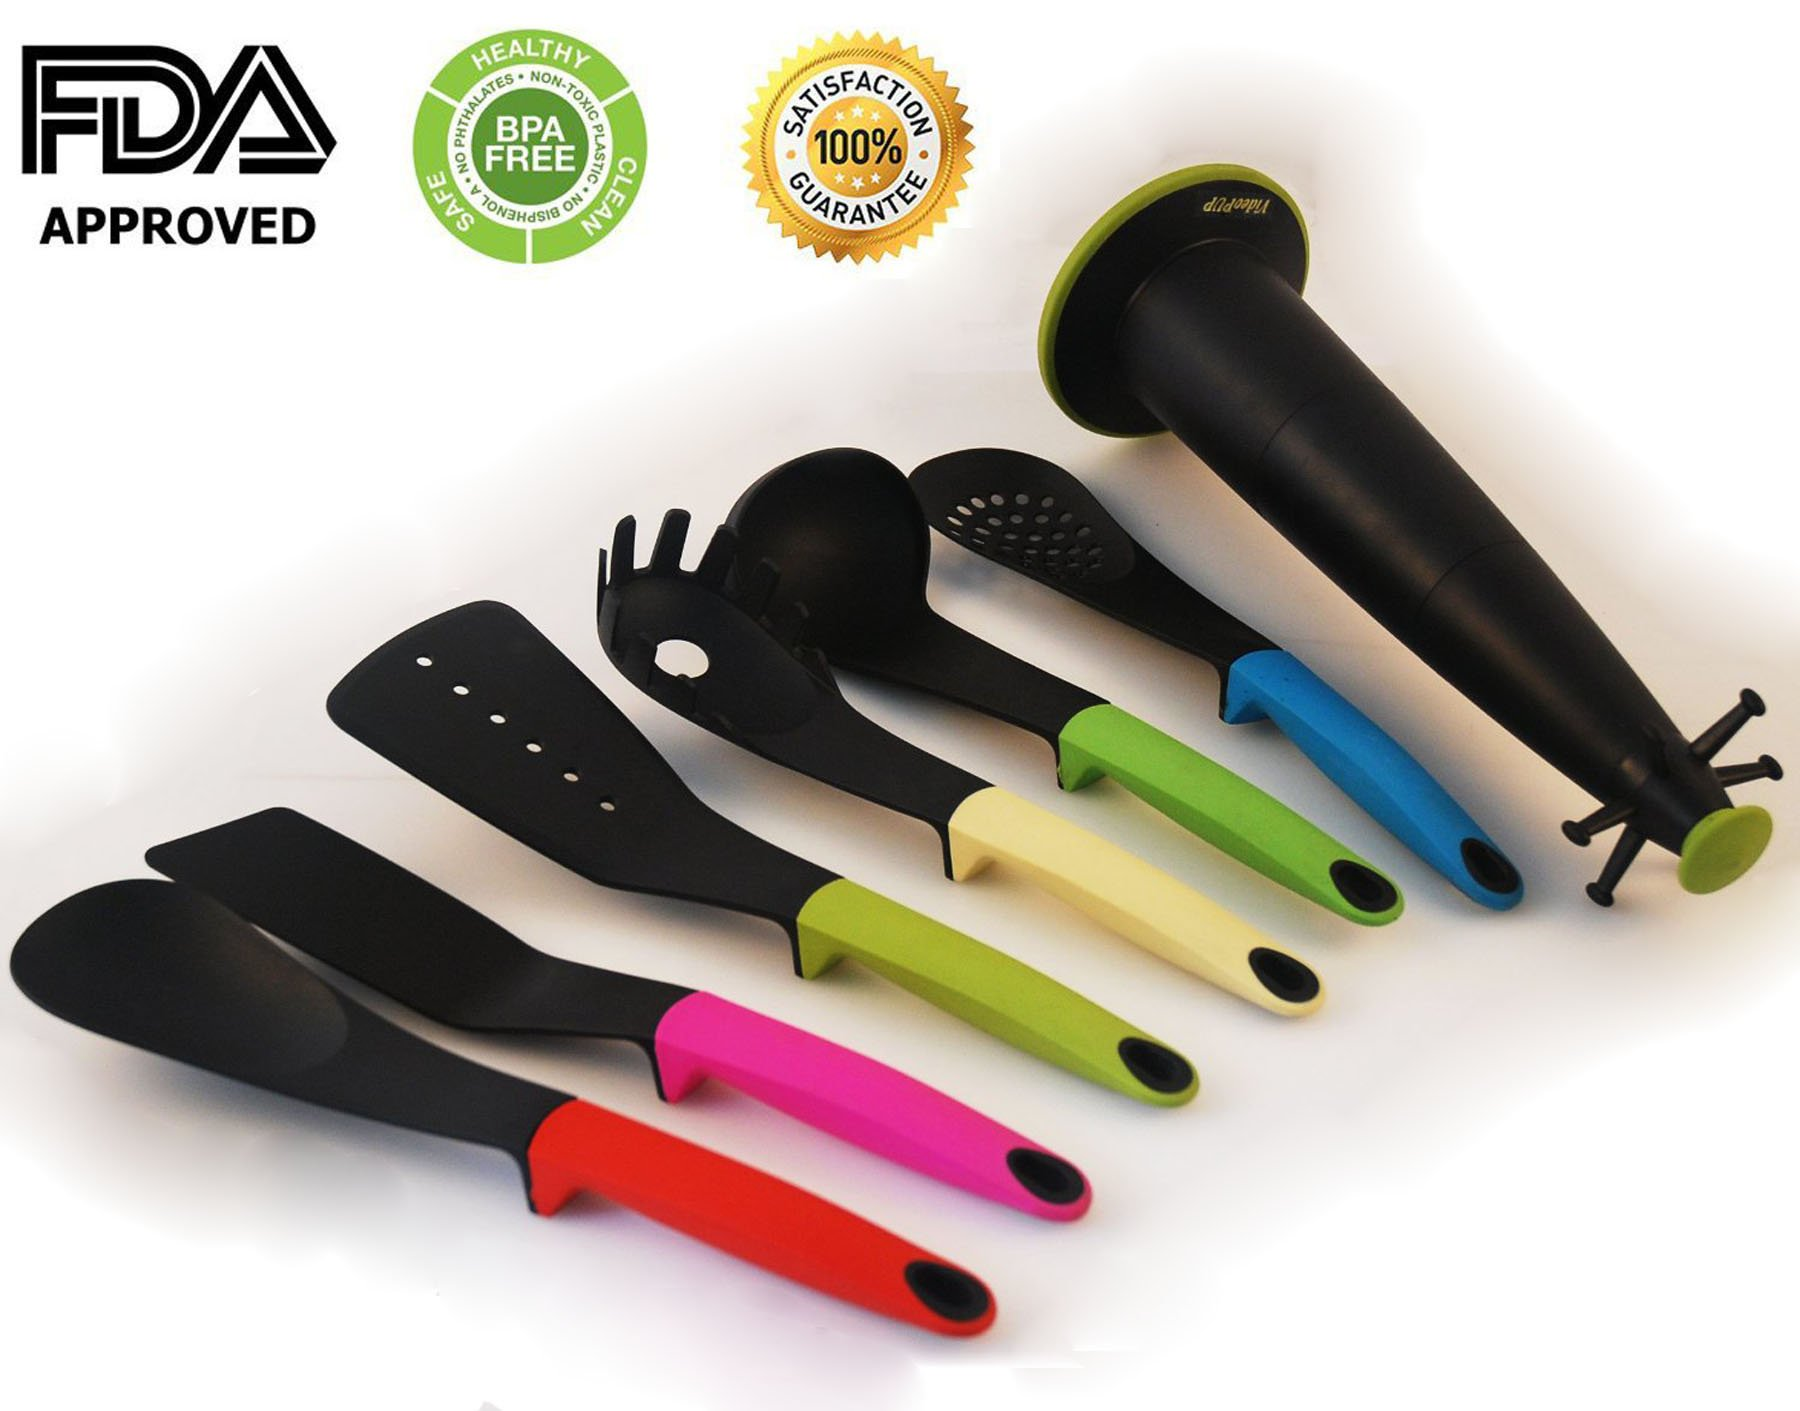 VideoPUP(TM) 6 Piece Heat Resistant Kitchen Utensil Set with Weighted Rubberized Easy Grip Handles, Multicolor (spaghetti server, ladle, solid spoon, slotted spoon, slotted turner, flexible turner)